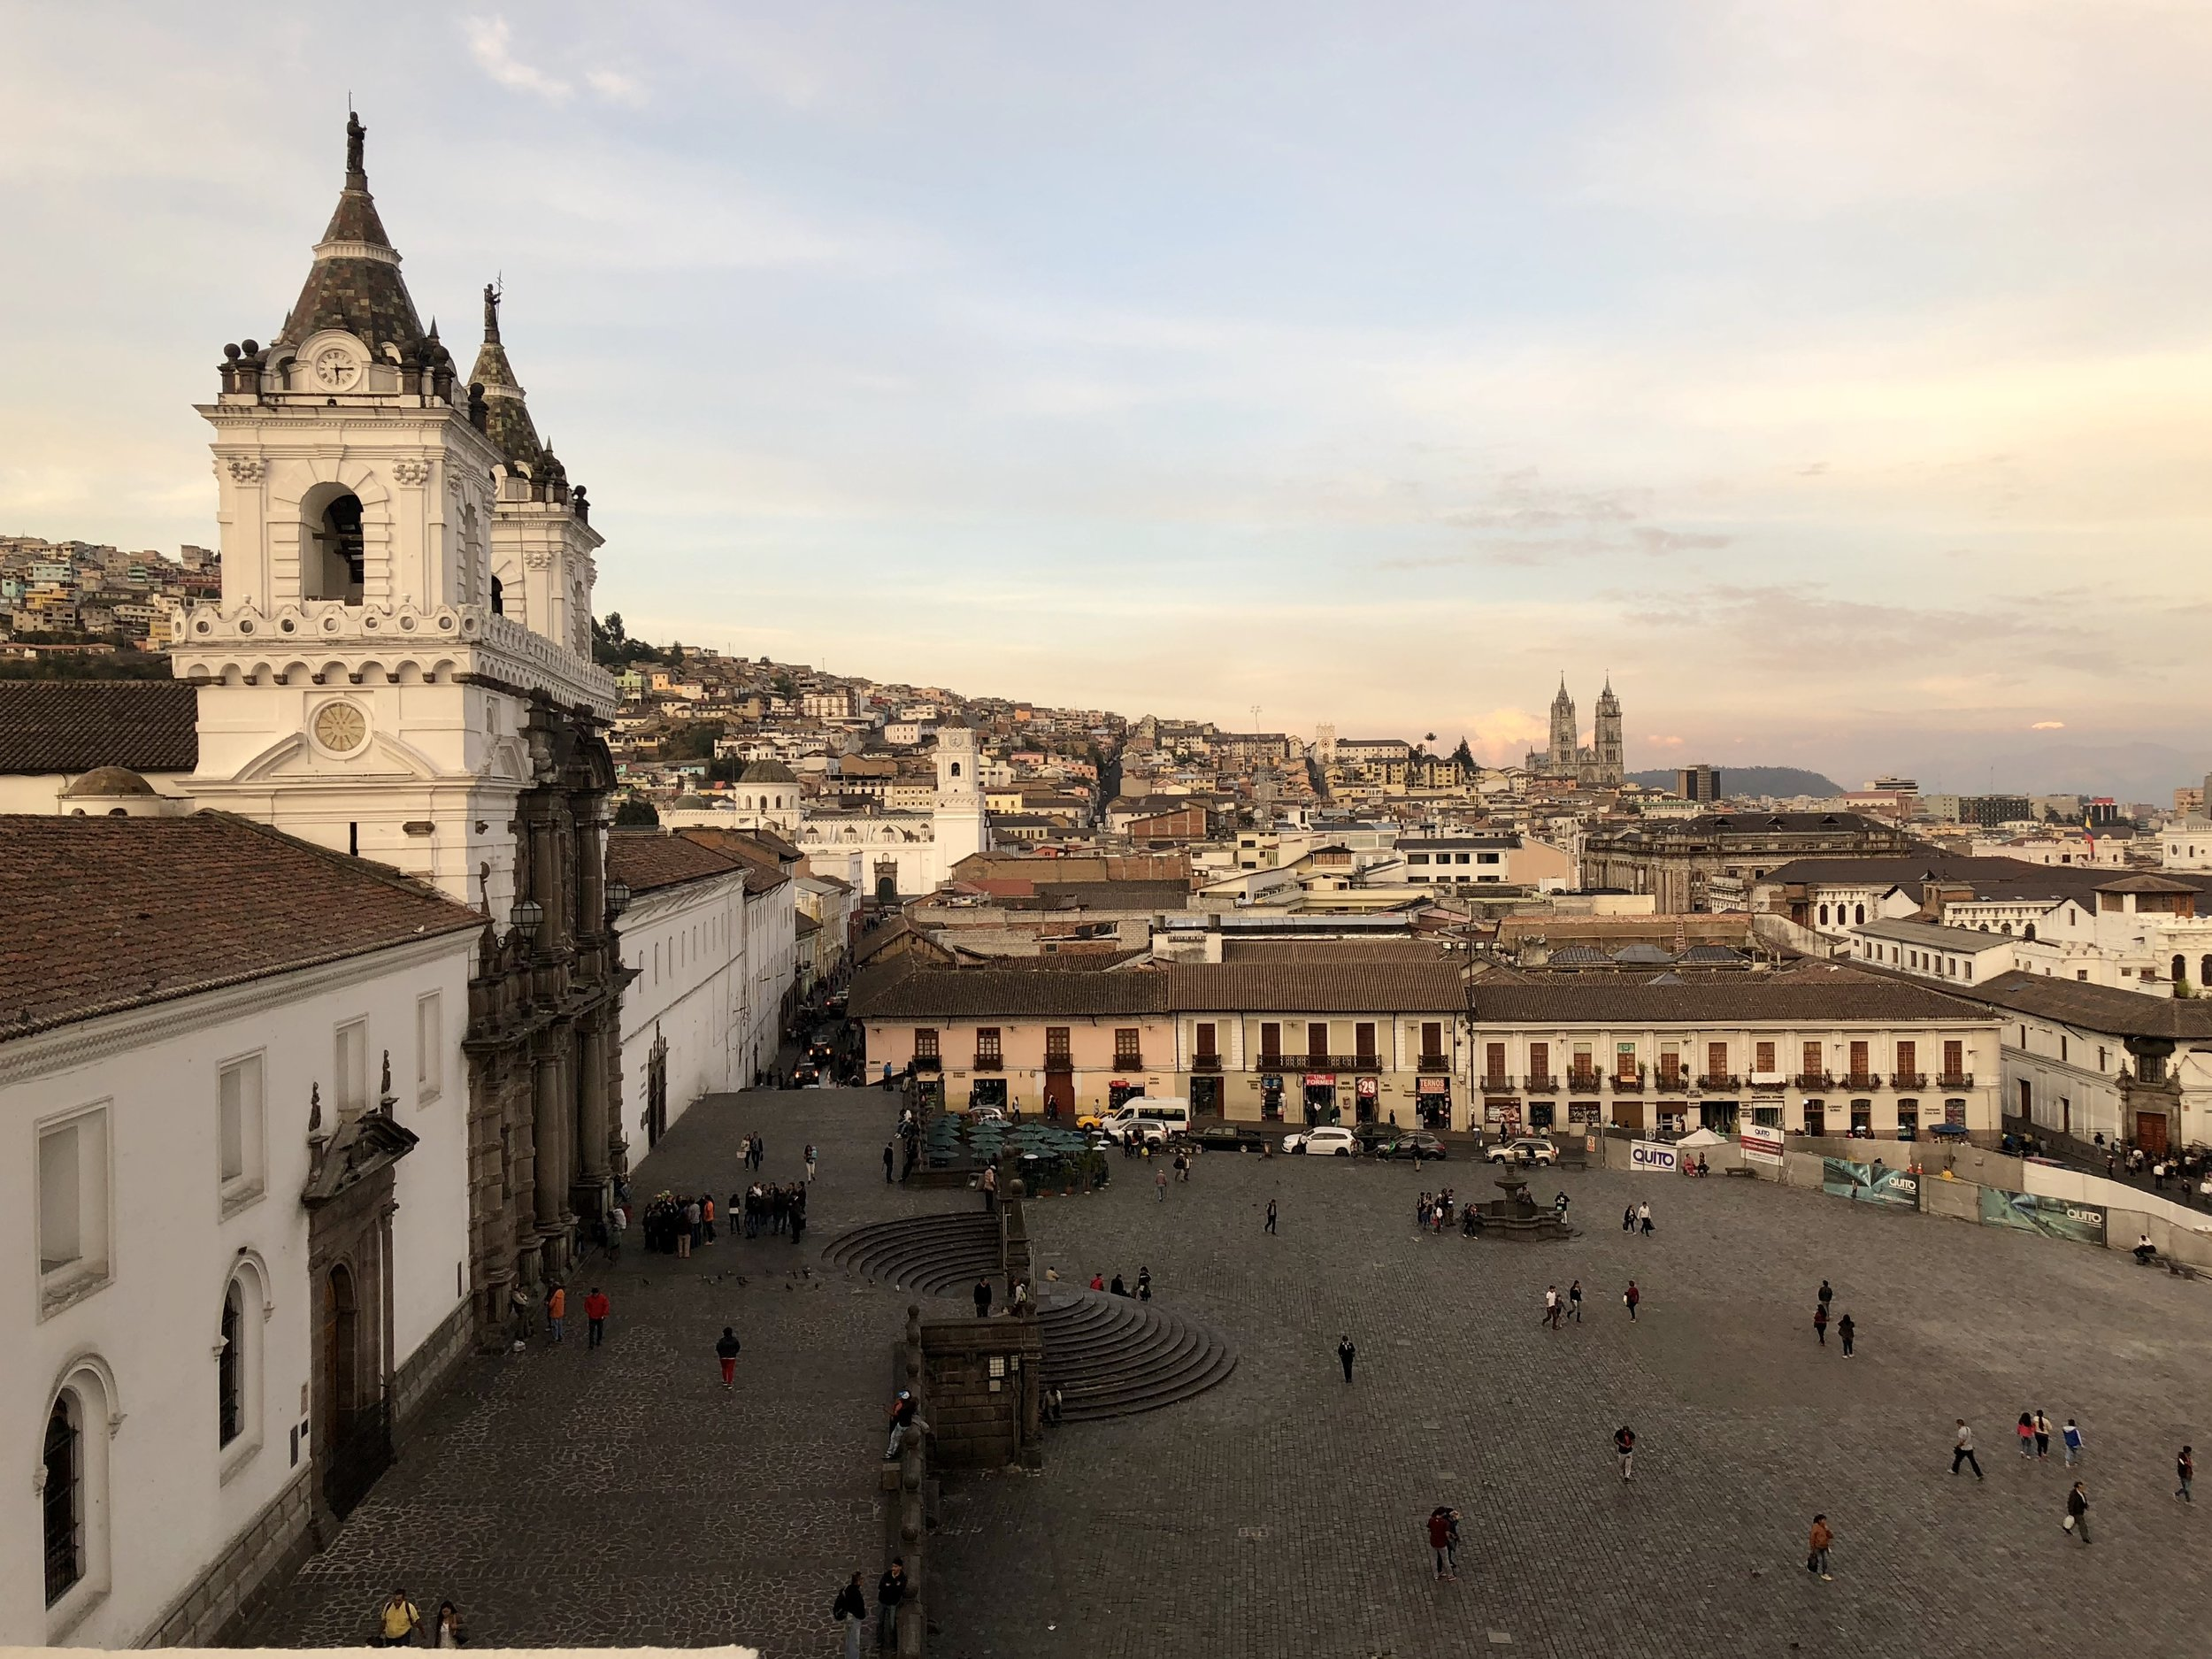 Quito — O The Places We'll Go